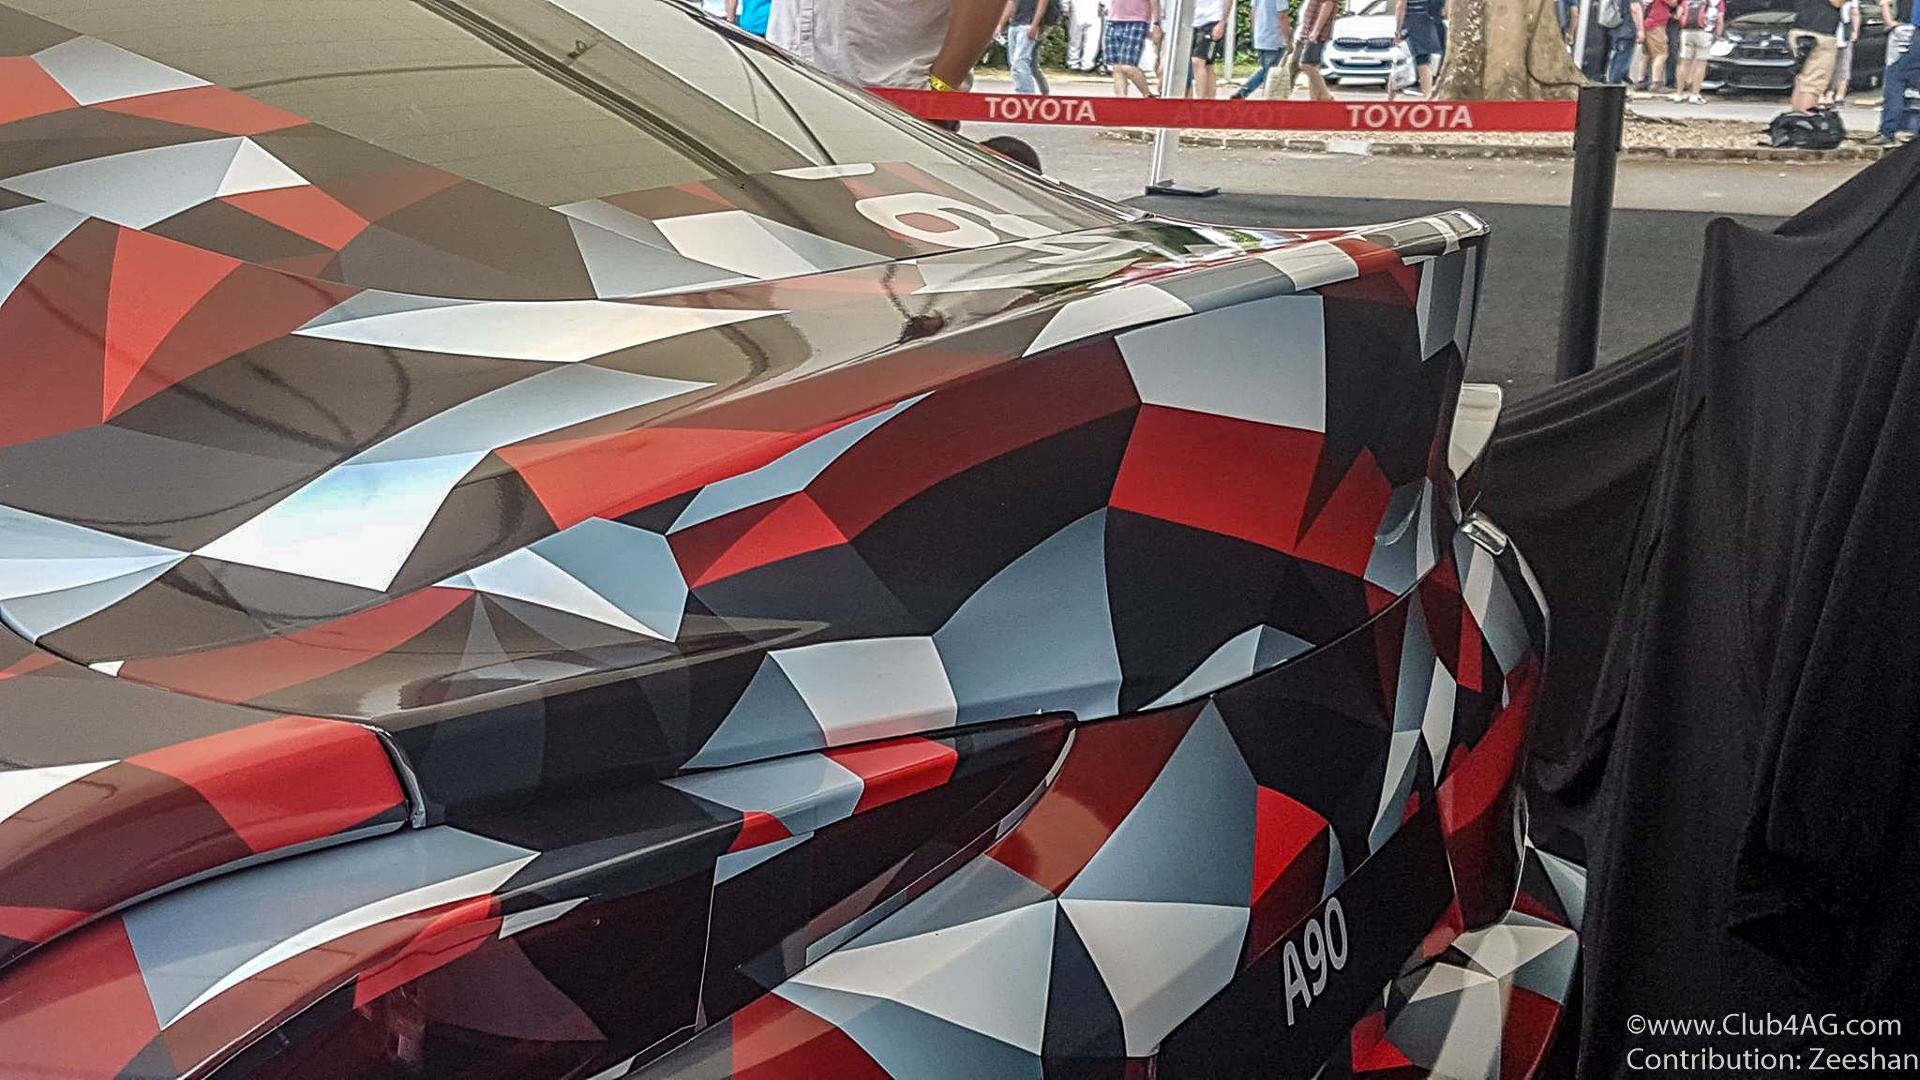 ScionLife.com A90 Toyota Supra 2019 Goodwood Festival of Speed Moto Miwa Club4AG